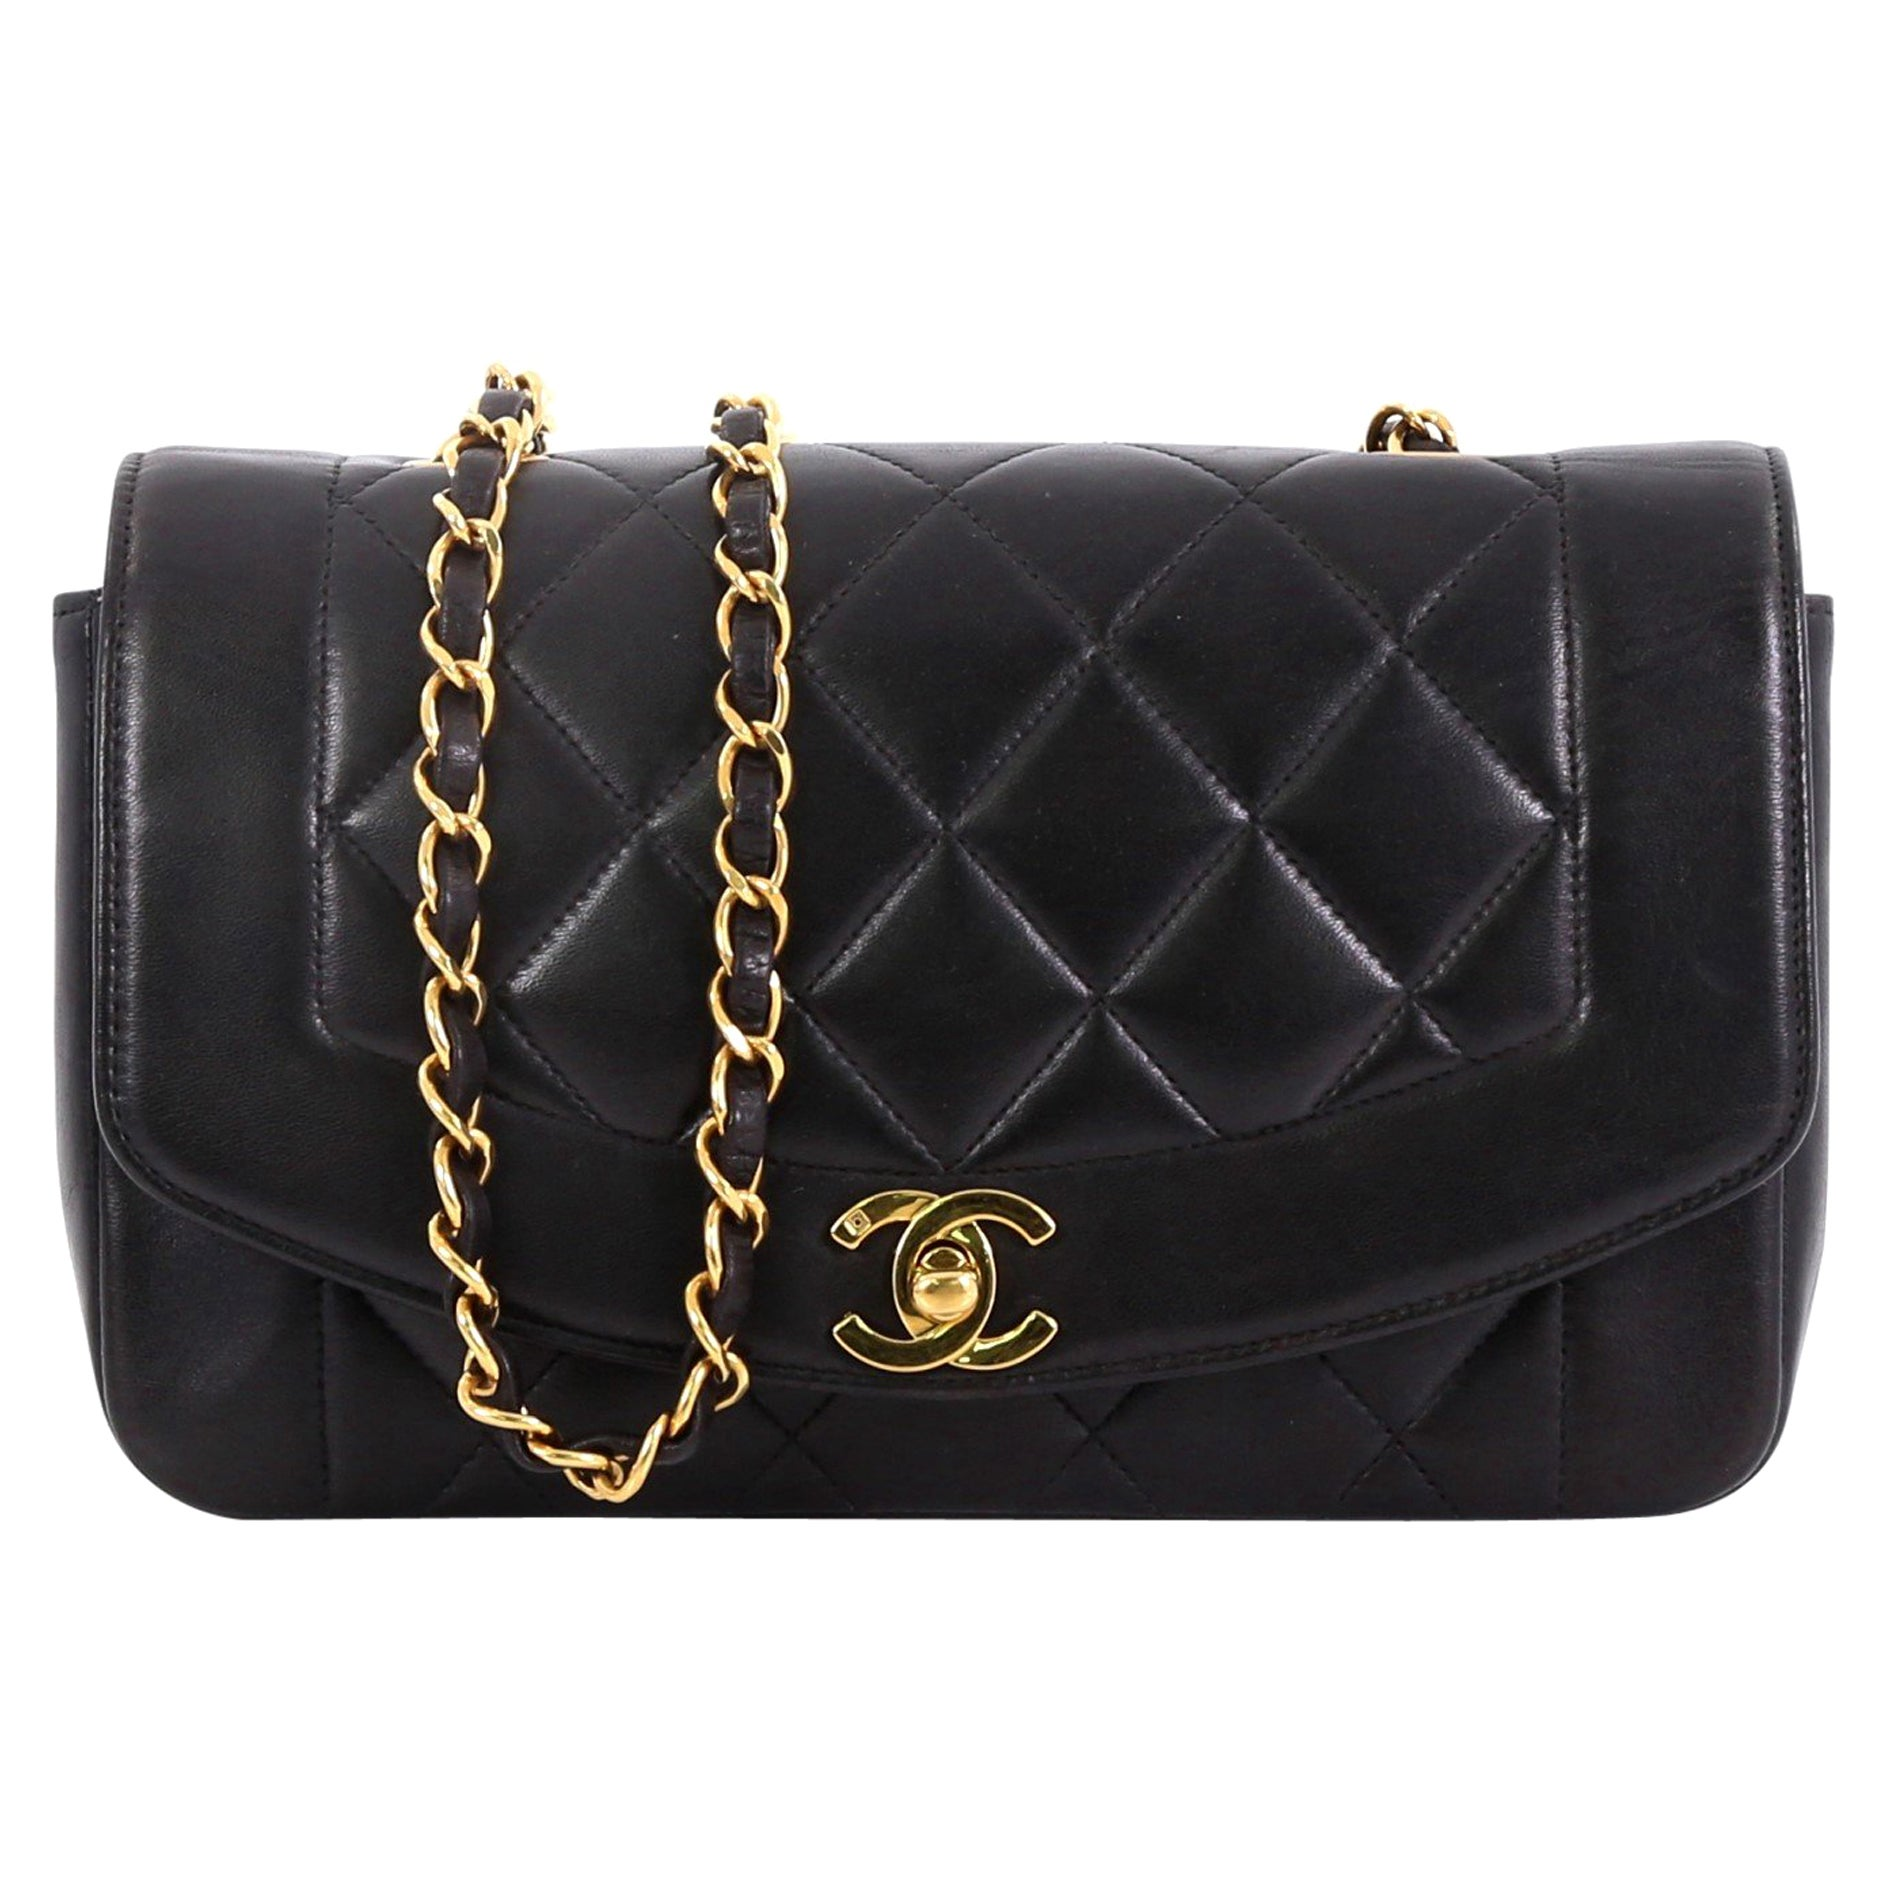 62d900568b462e Chanel Vintage Diana Flap Bag Quilted Lambskin Small at 1stdibs